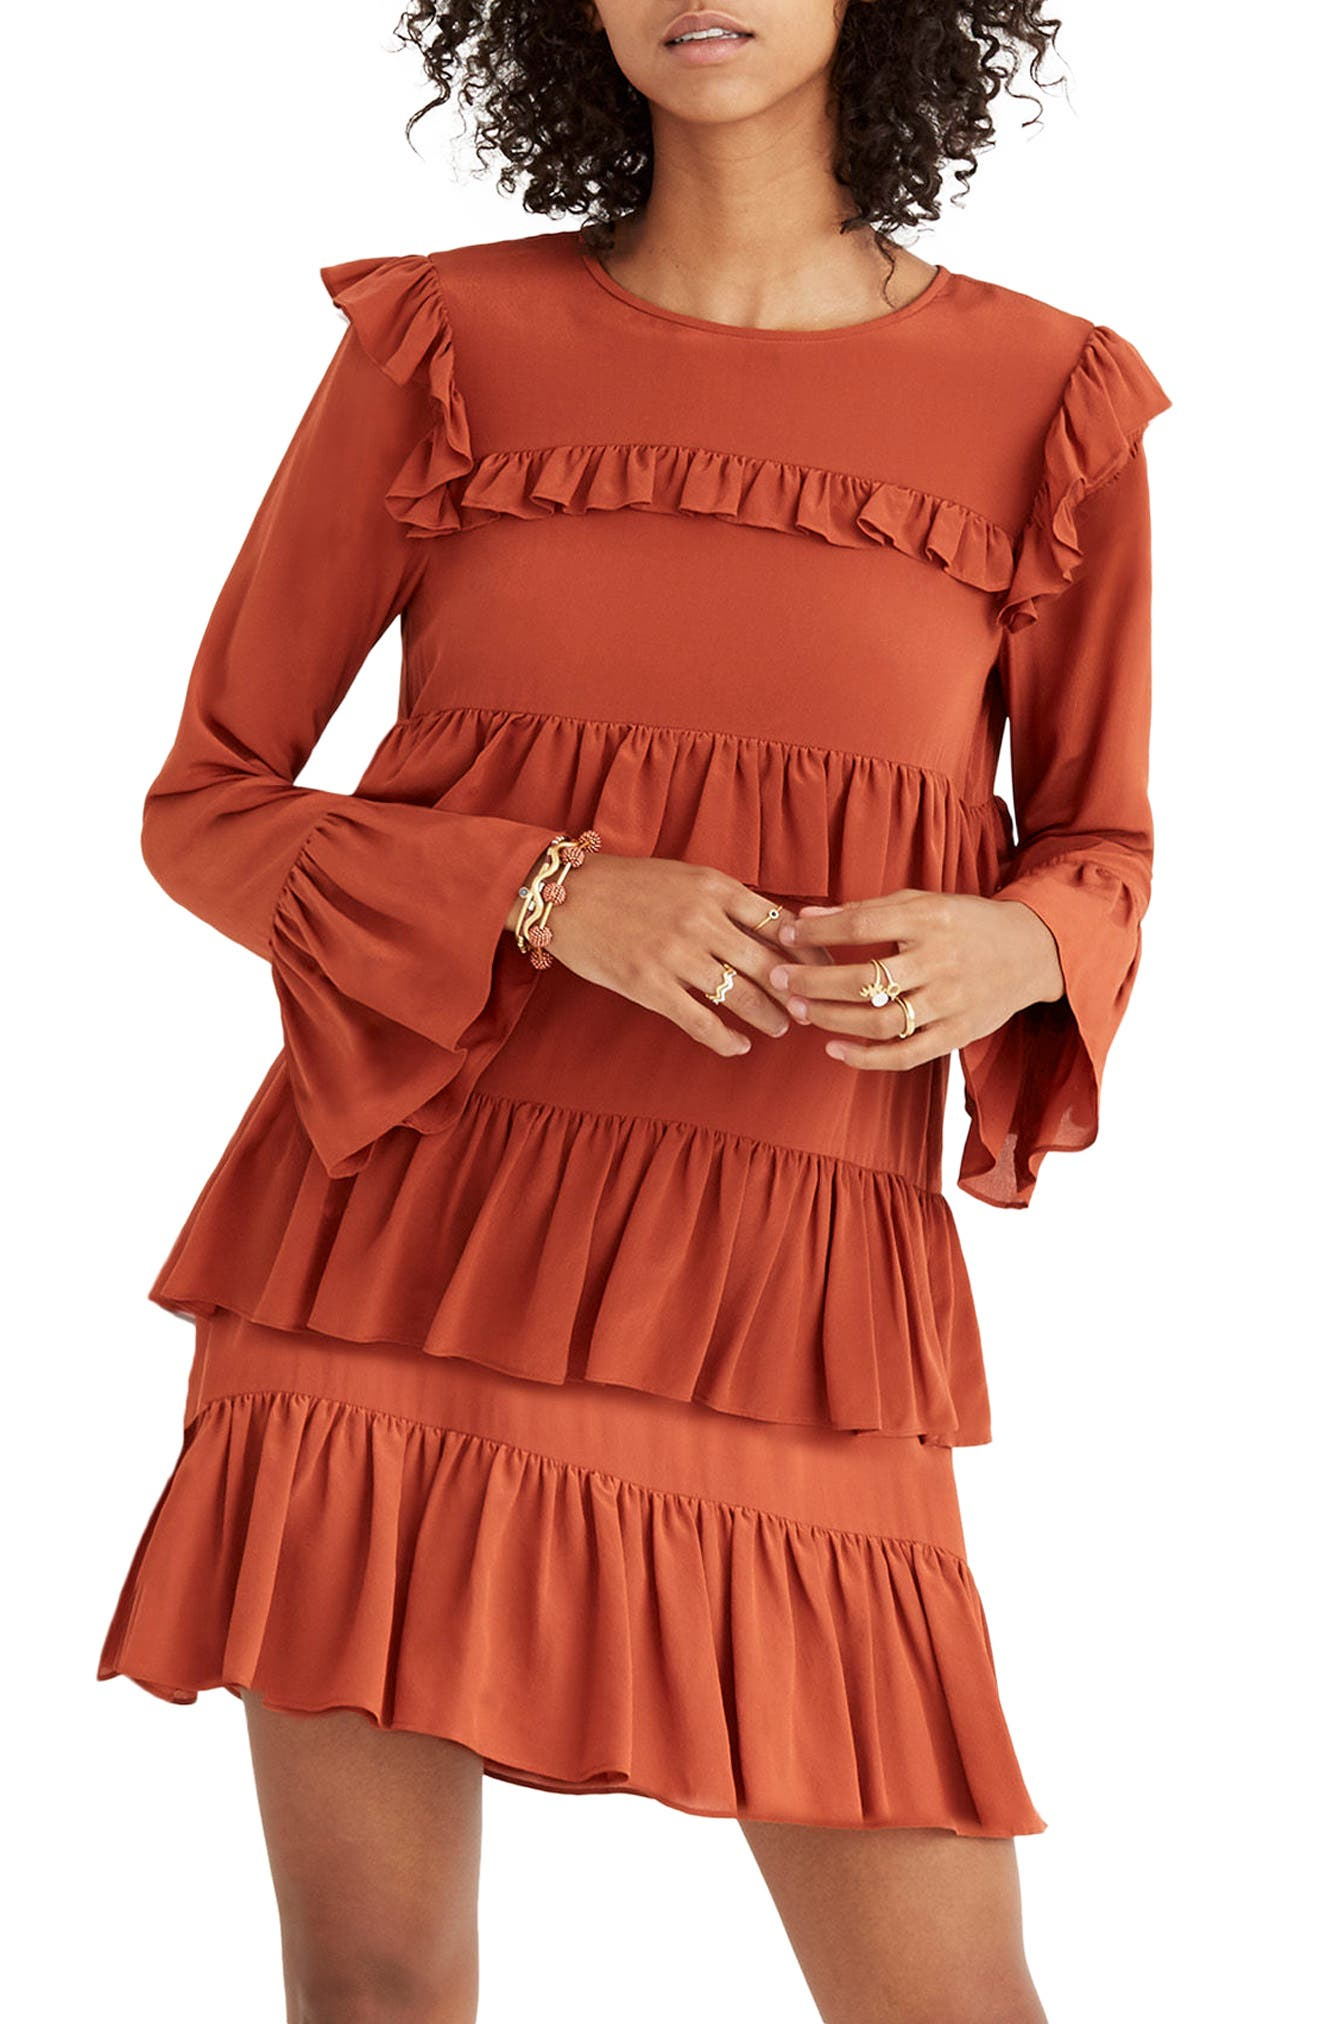 Waterlily Ruffle Dress,                             Main thumbnail 1, color,                             Burnished Rust